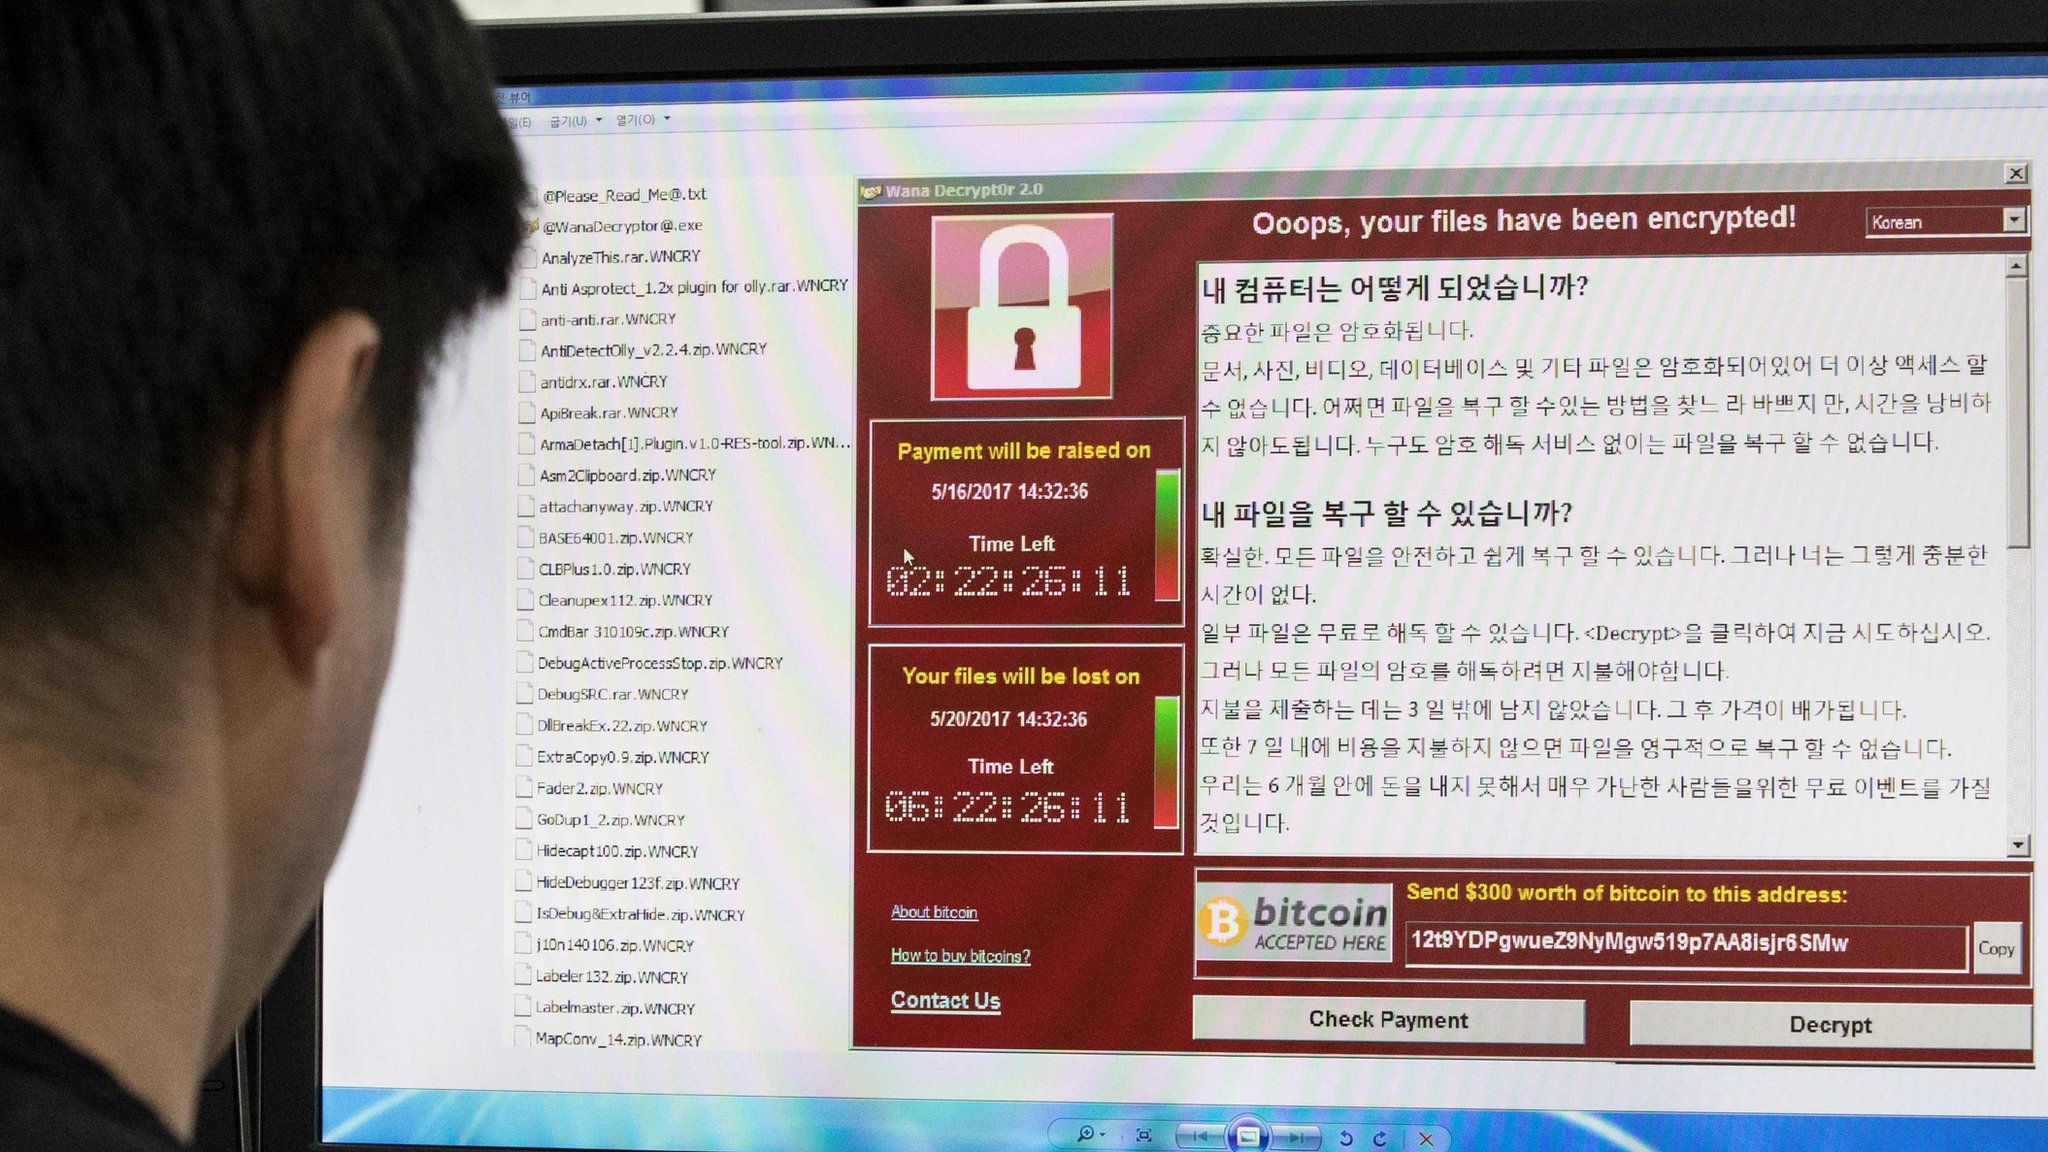 WannaCry ransom notice analysis suggests Chinese link